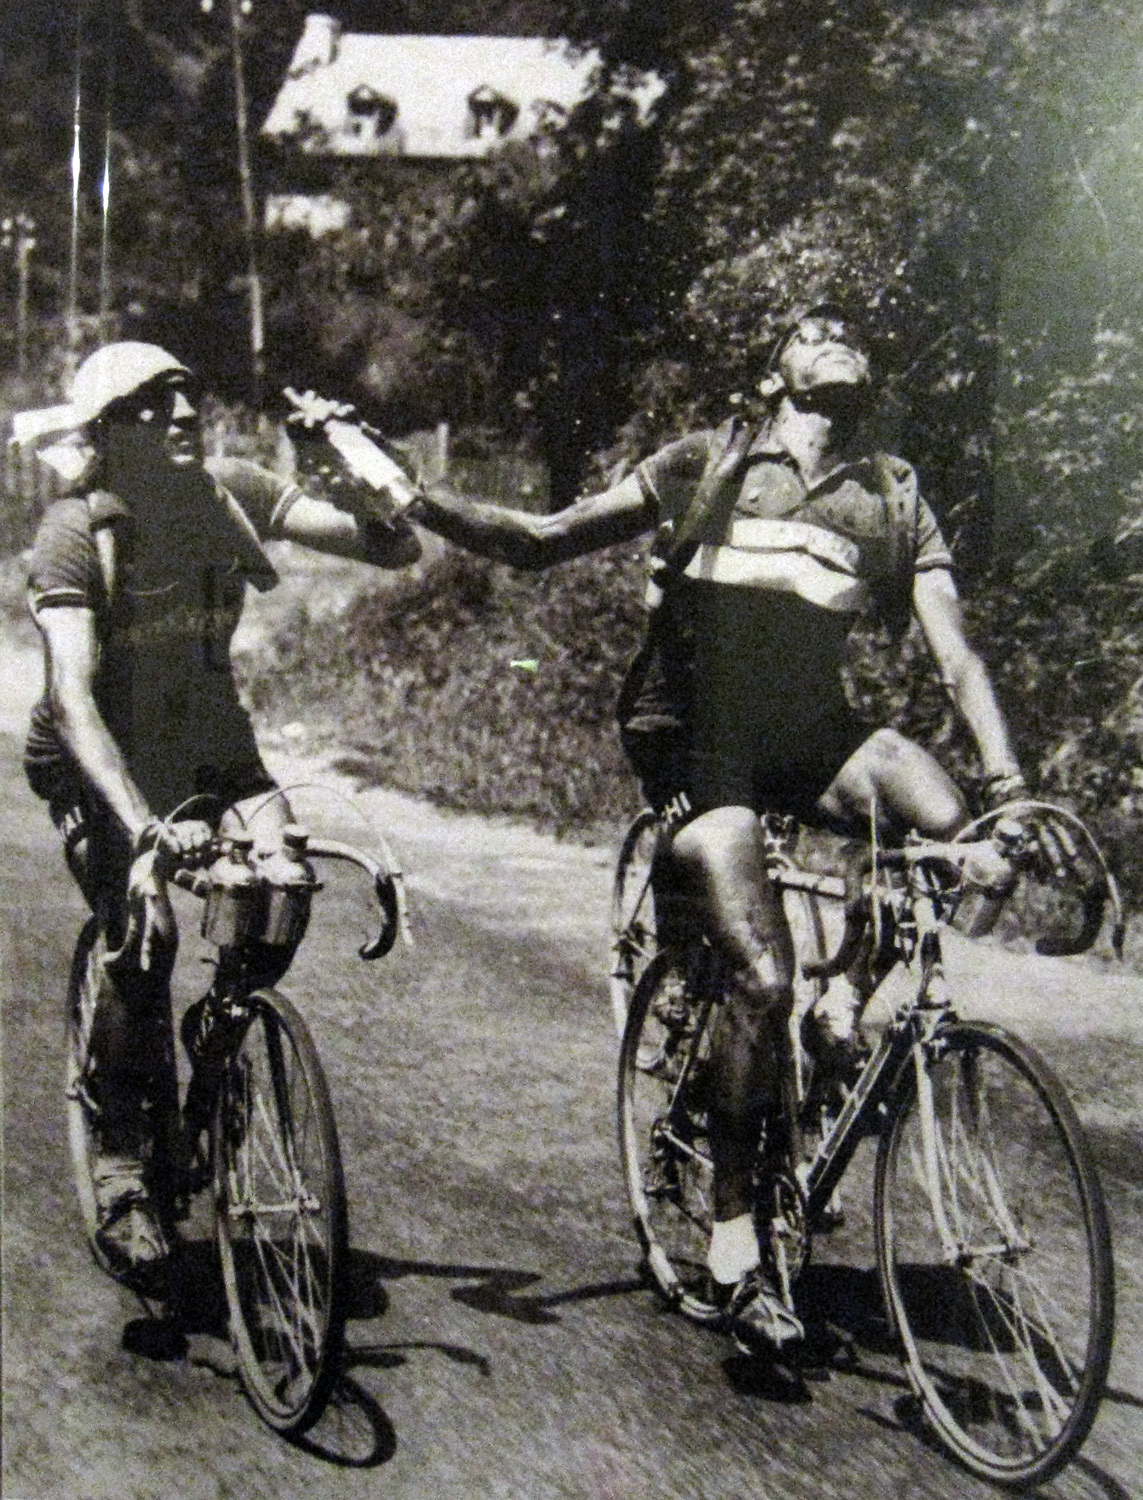 1950s-tour-de-france-coppi-bartali-share-wine